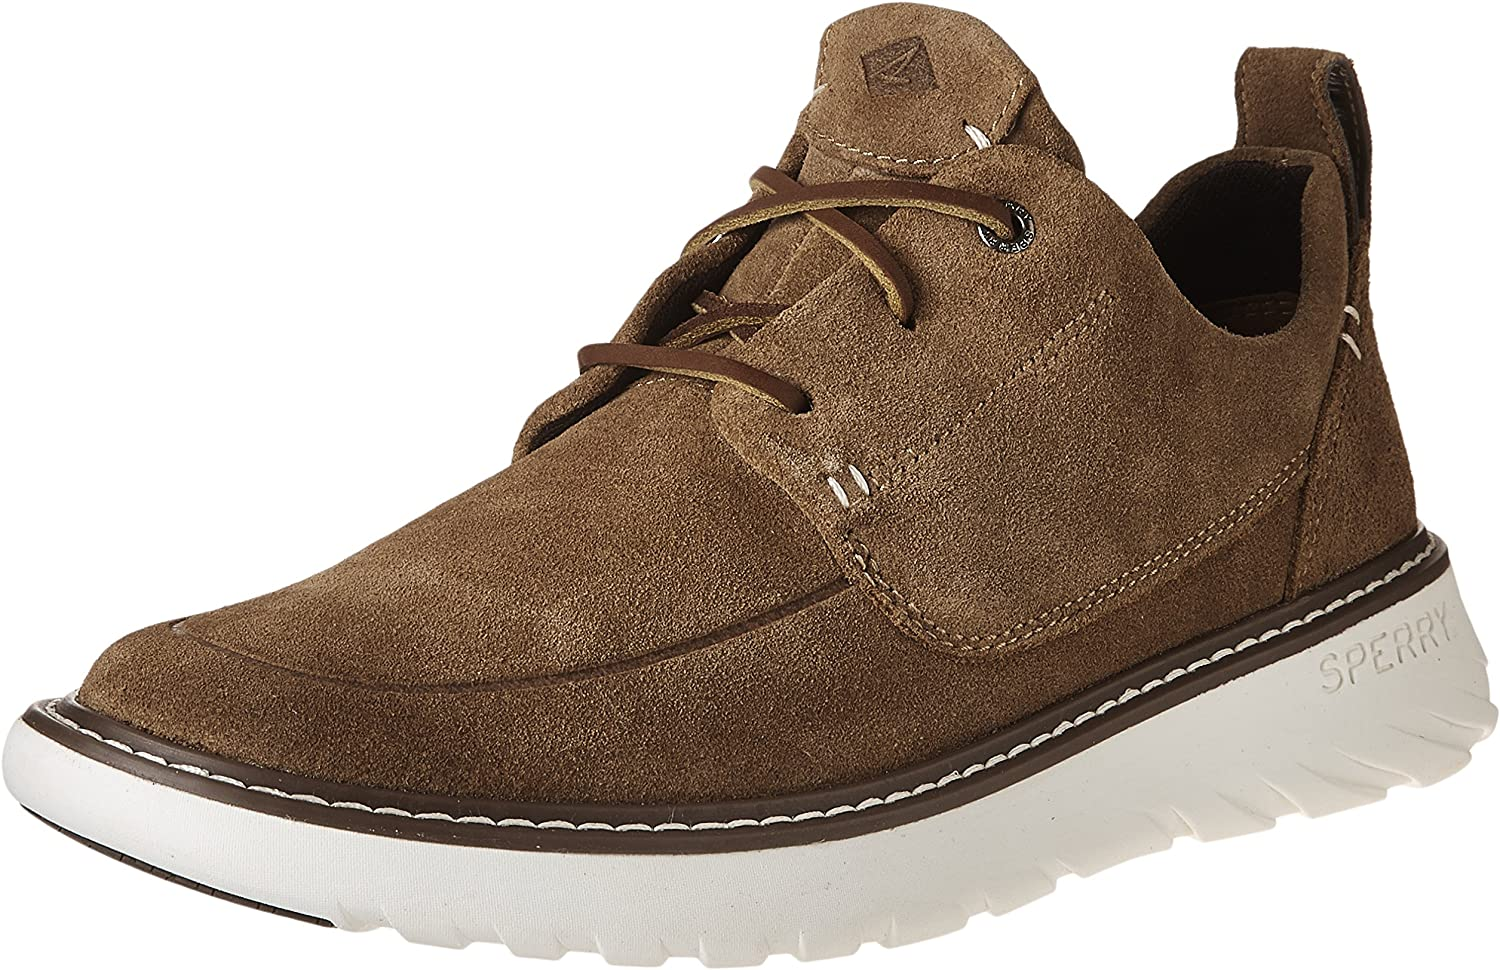 Sperry Men's Element 3-Eye Suede shoes